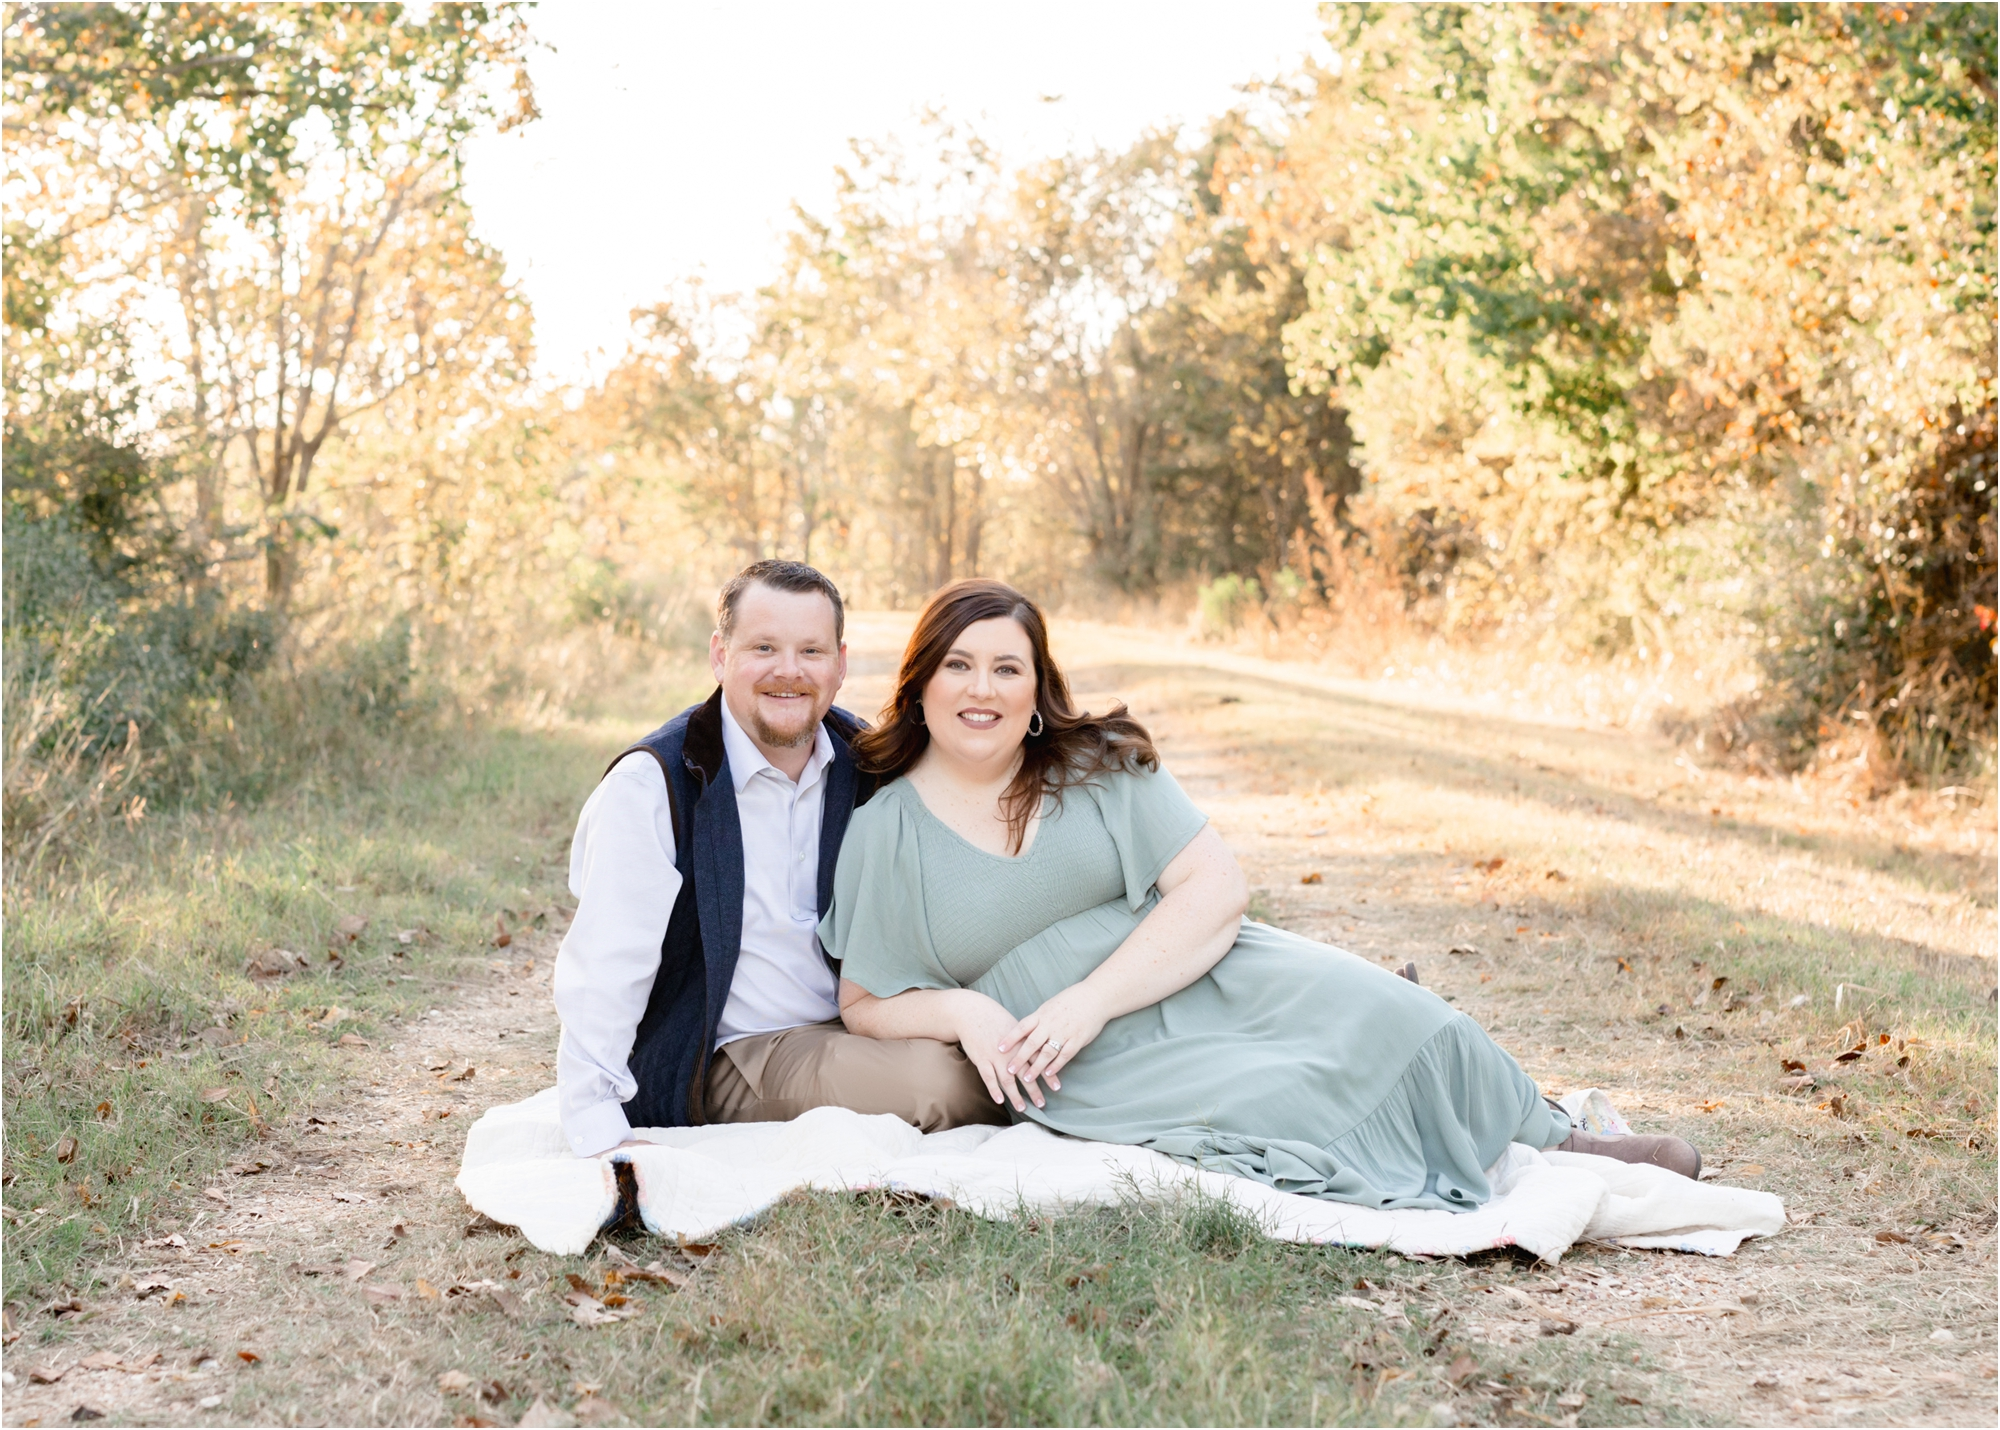 Mom and Dad sitting together on blanket during family session in Katy, TX. Photo by Lifetime of Clicks Photography.